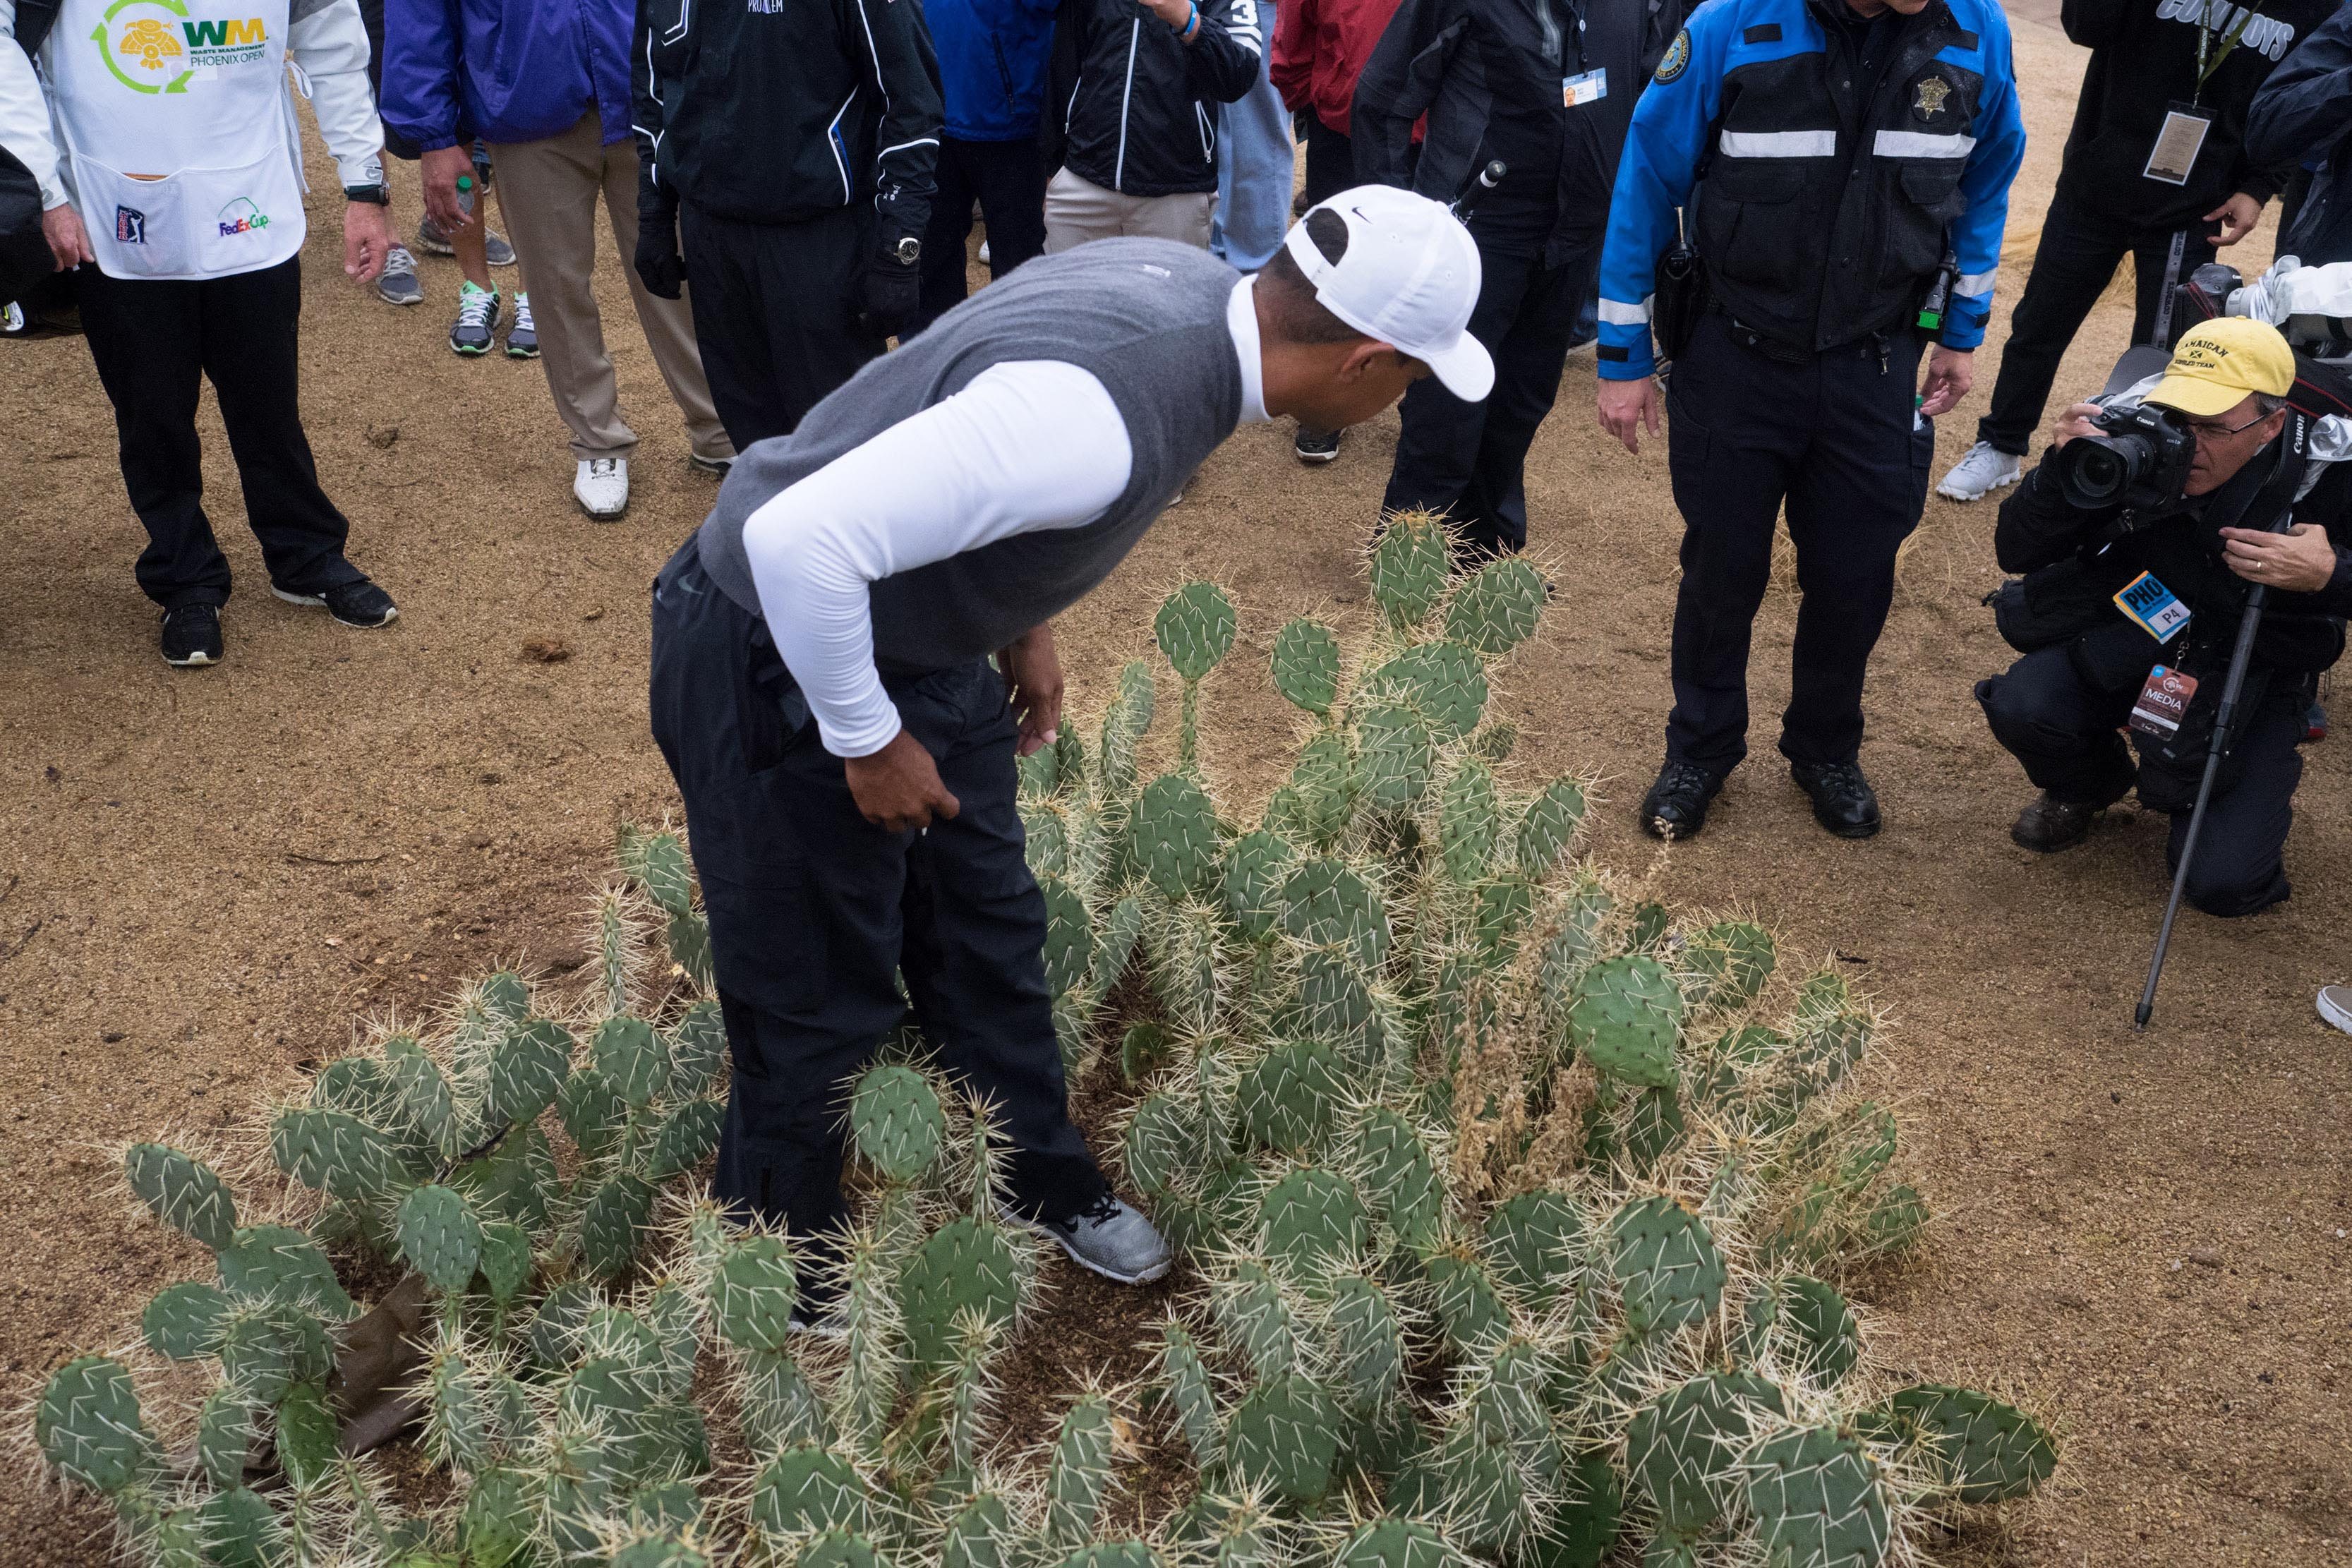 Tiger Woods stands in a cactus while searching for his ball. (USAT)